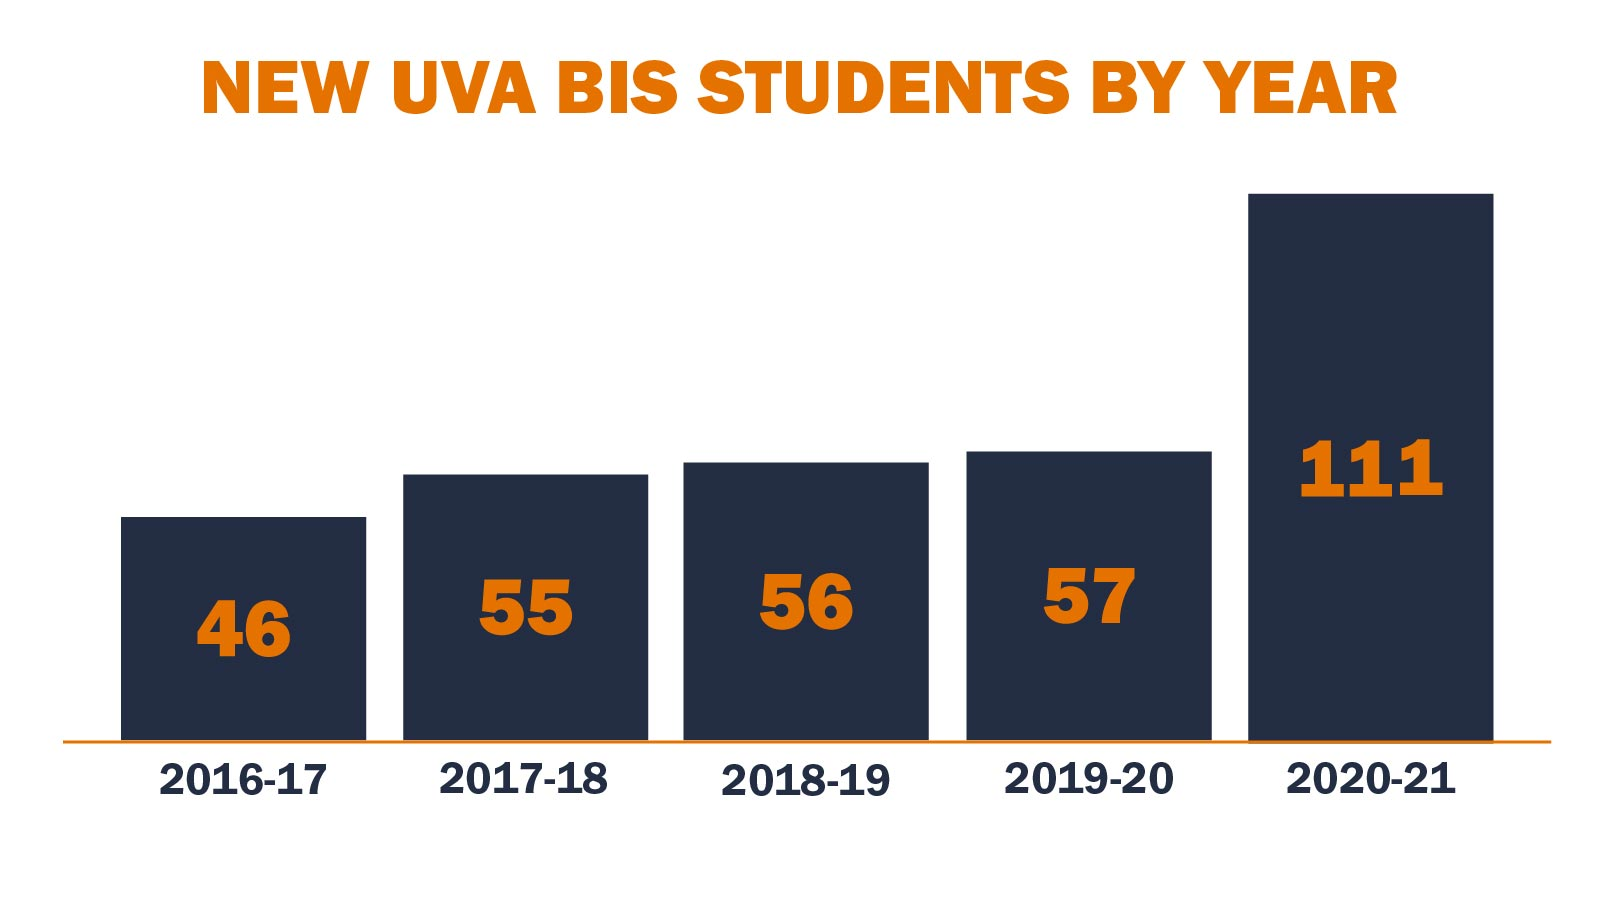 A bar graph tracks year-over-year enrollment in the Bachelor of Interdisciplinary Studies program, growing from 46 students in 2016-17 to 111 in 2020-21.